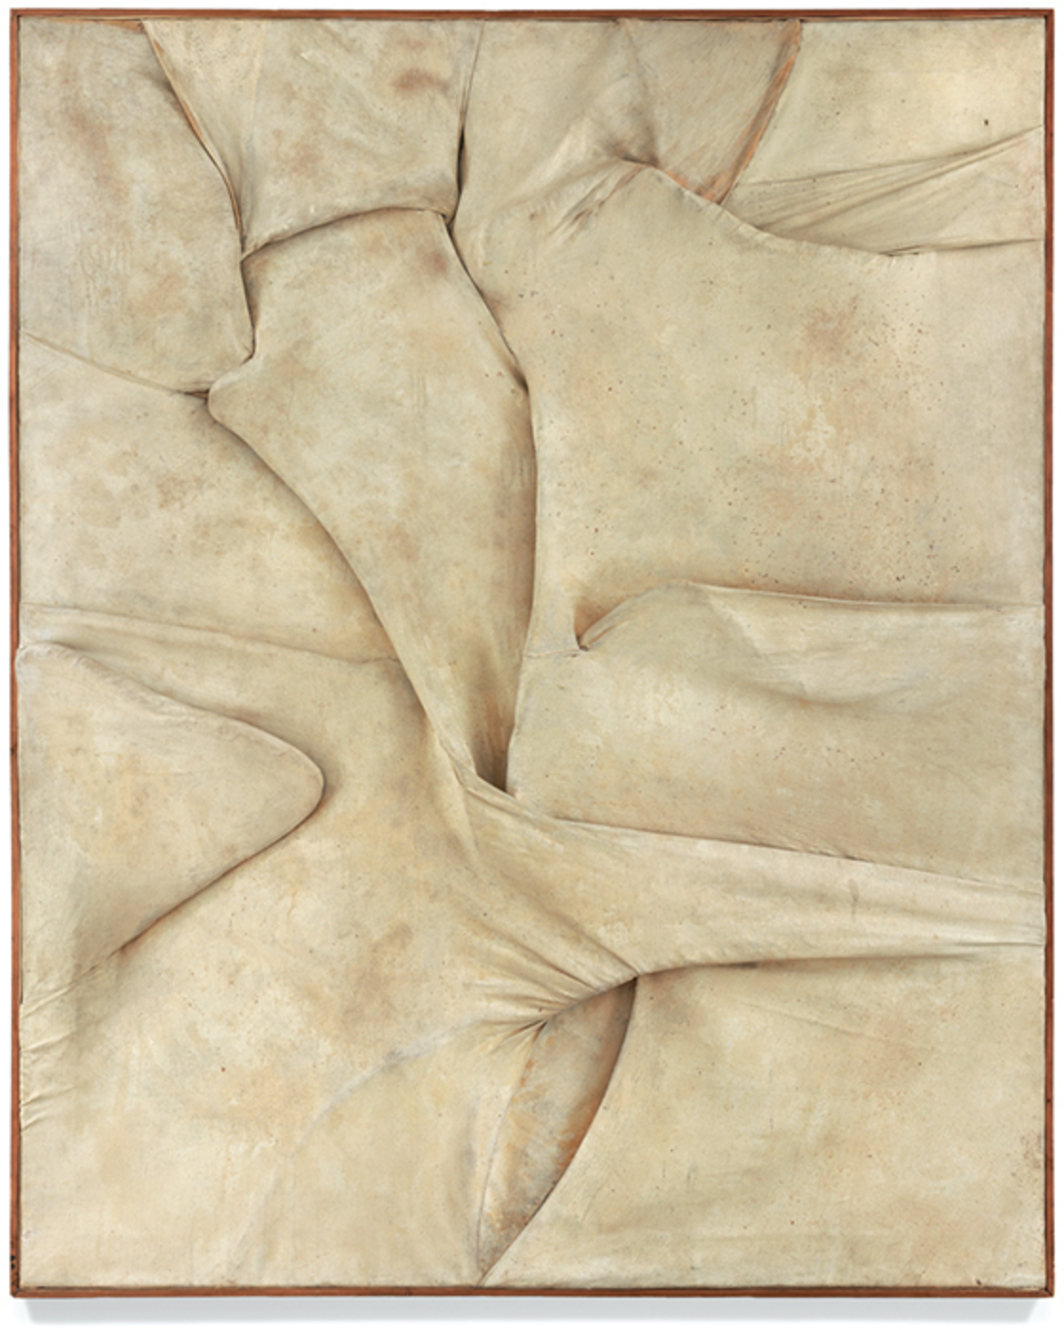 "Salvatore Scarpitta, Matrimonio segreto (Extramural n. 6) (Secret Marriage [Extramural n. 6]), 1958, bandages, mixed media, 64 1/8 × 51 1/8"". © Stella Alba Cartaino."